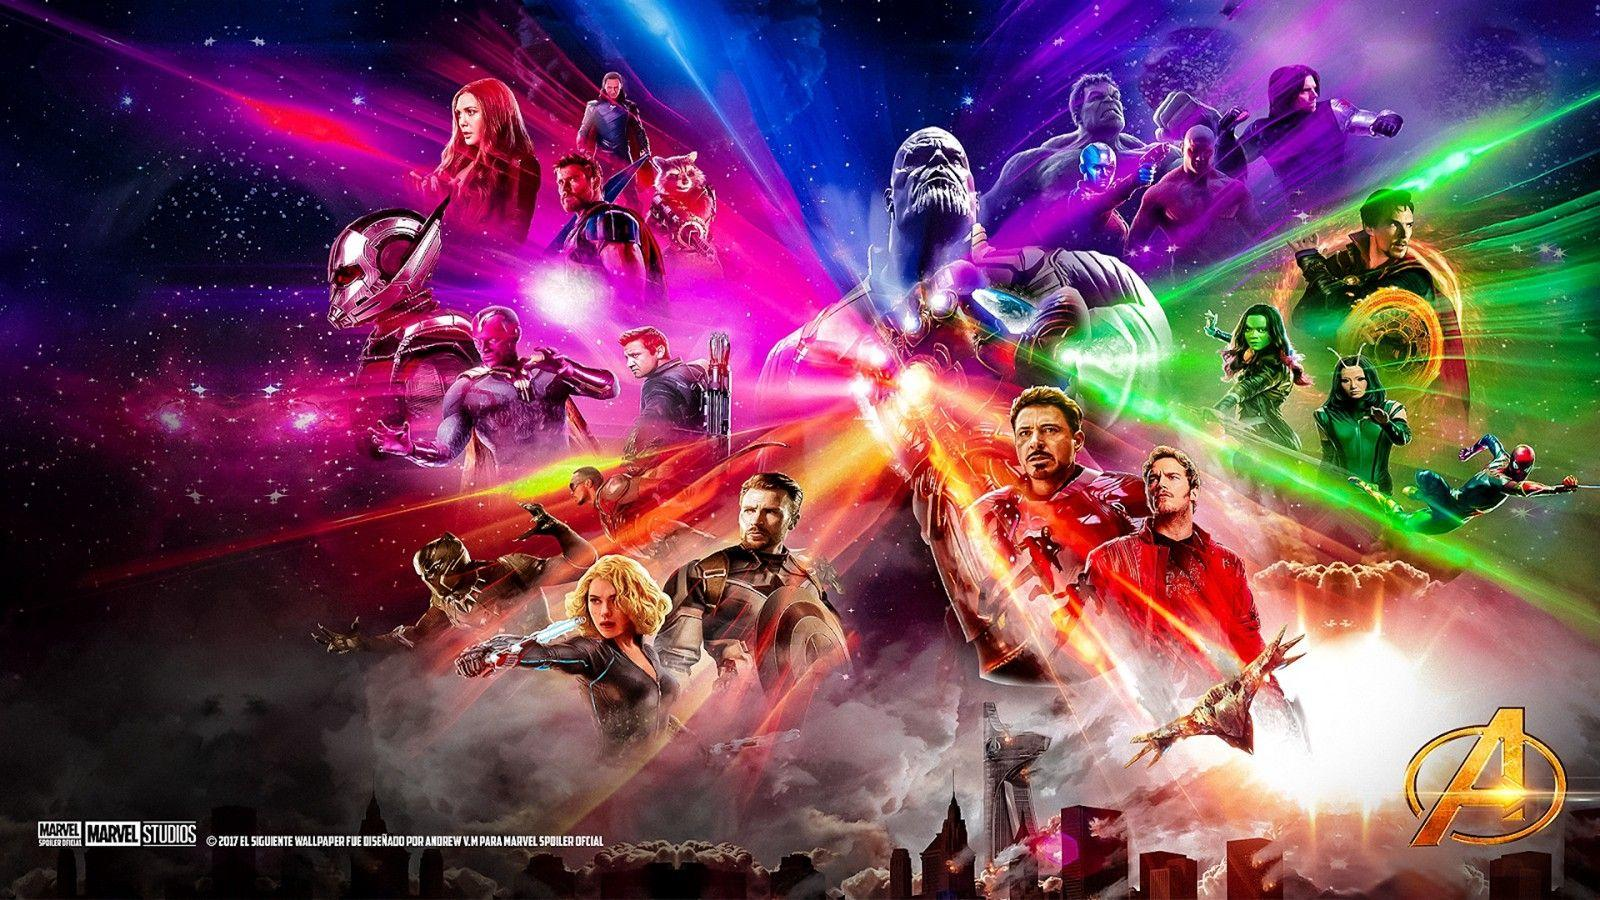 Beautiful Avengers Infinity War Cast Wallpaper – Tanvir Islam – Medium